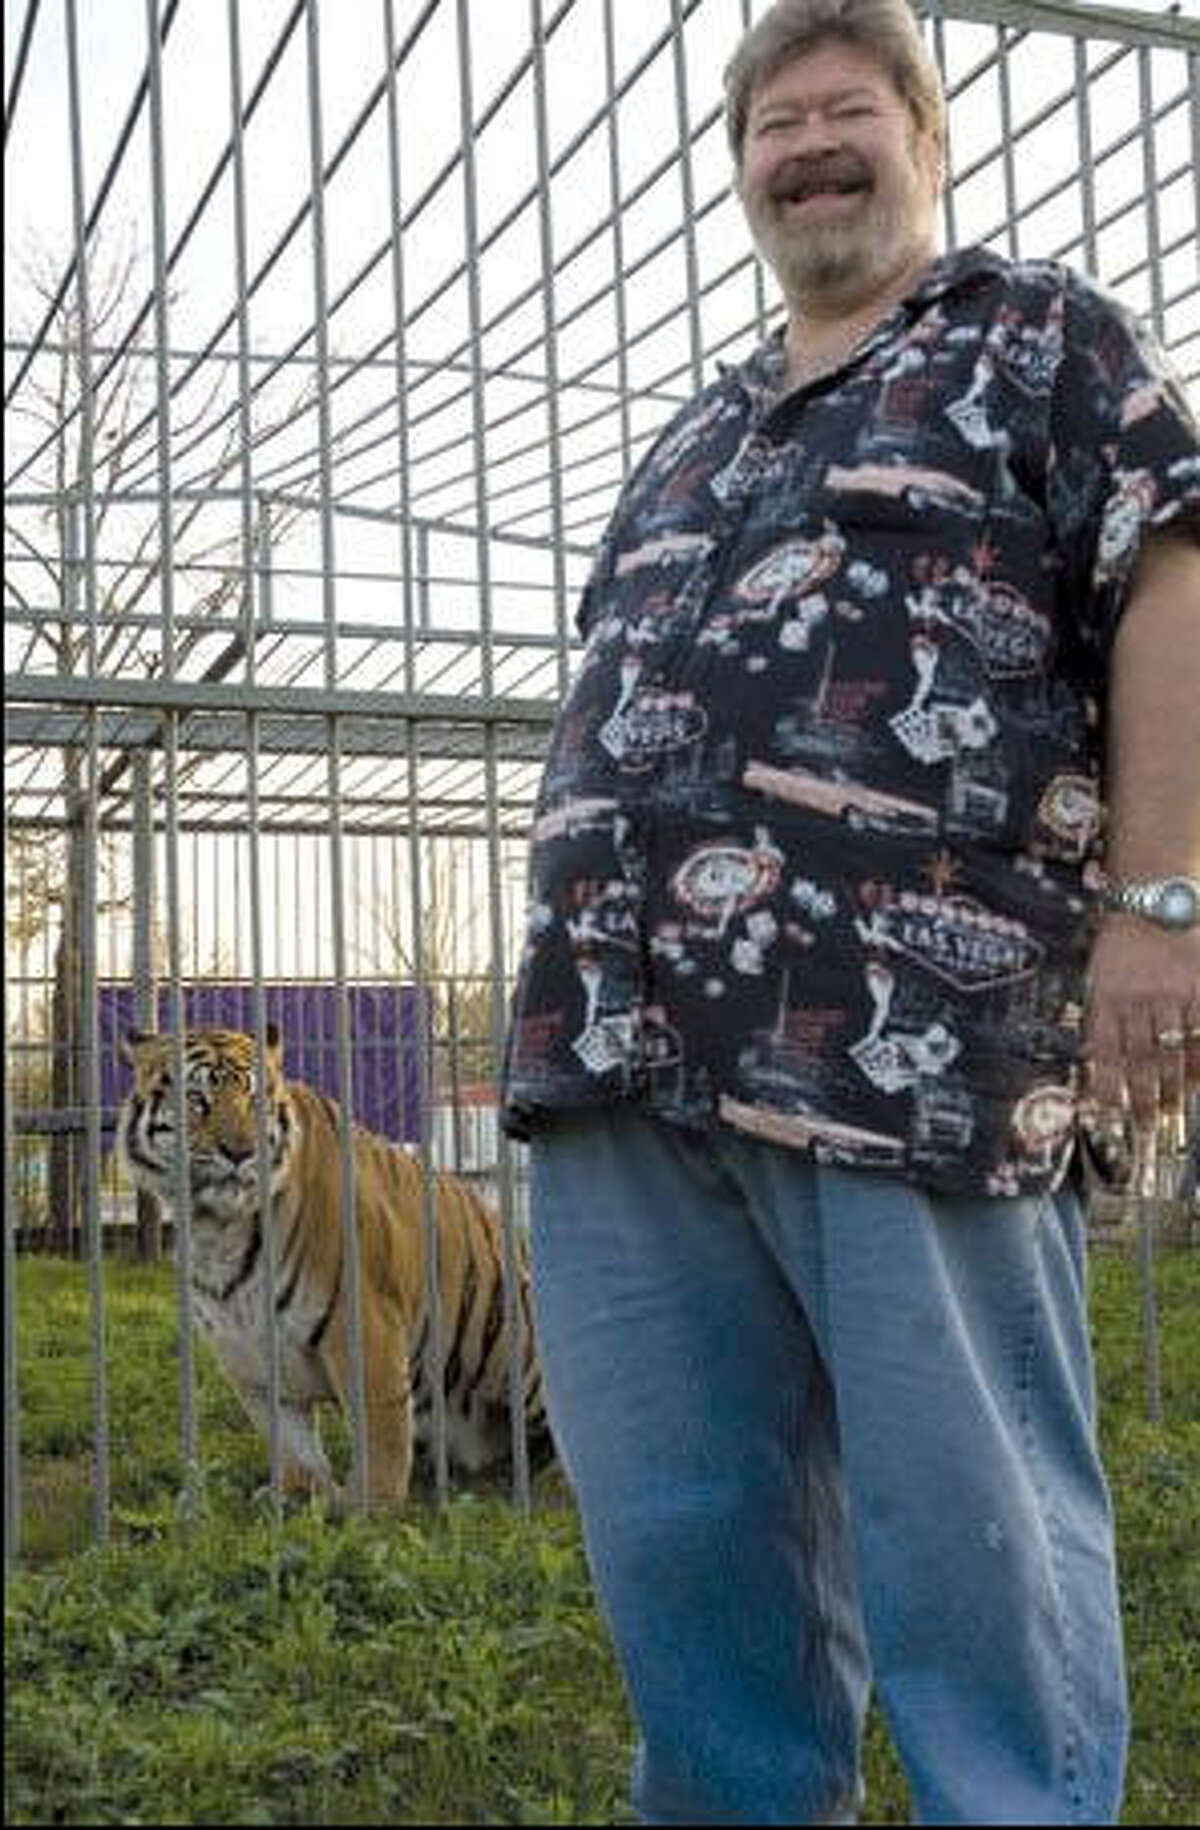 Man and beast Mike Sandlin, the owner of Tiger Truck Stop in Grosse Tete, La., and Tony, the live Bengal tiger living in an enclosure at the business just off Interstate 10. The tiger has become a point of contention with animal rights activists.